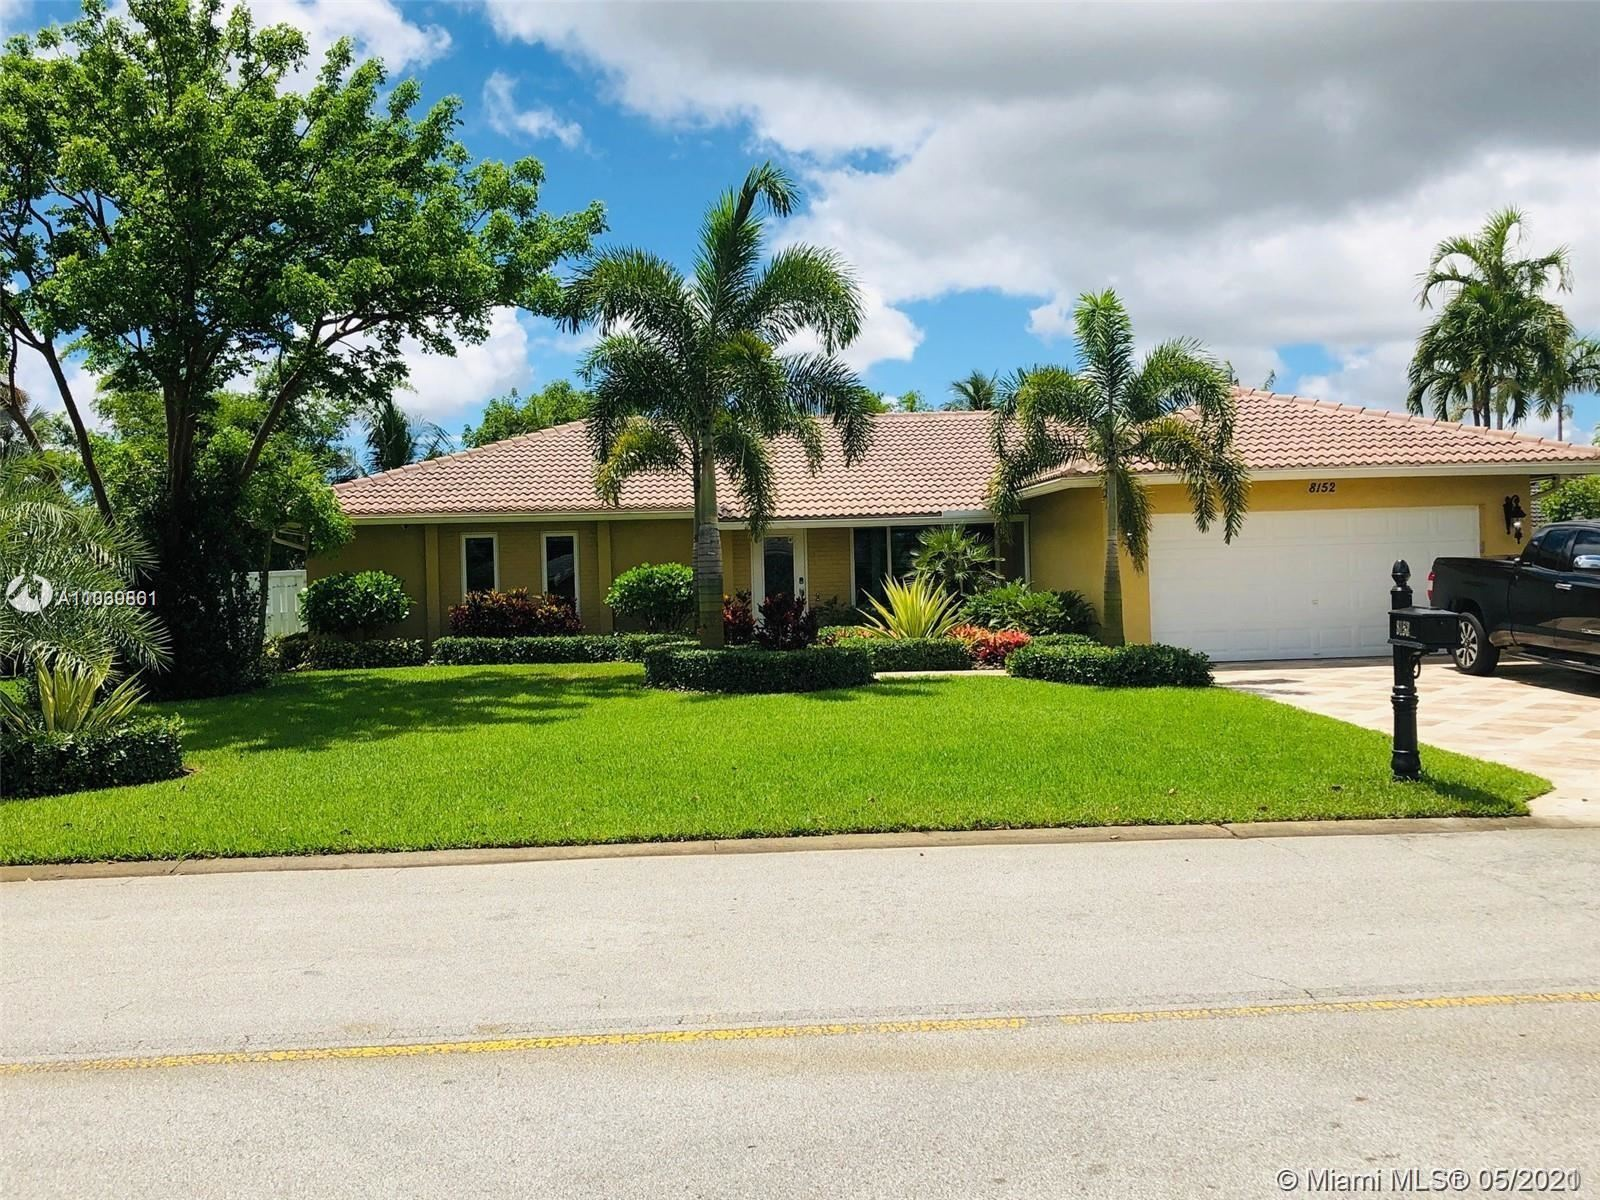 Photo of 8152 NW 6th Ct, Coral Springs, FL 33071 (MLS # A11039861)